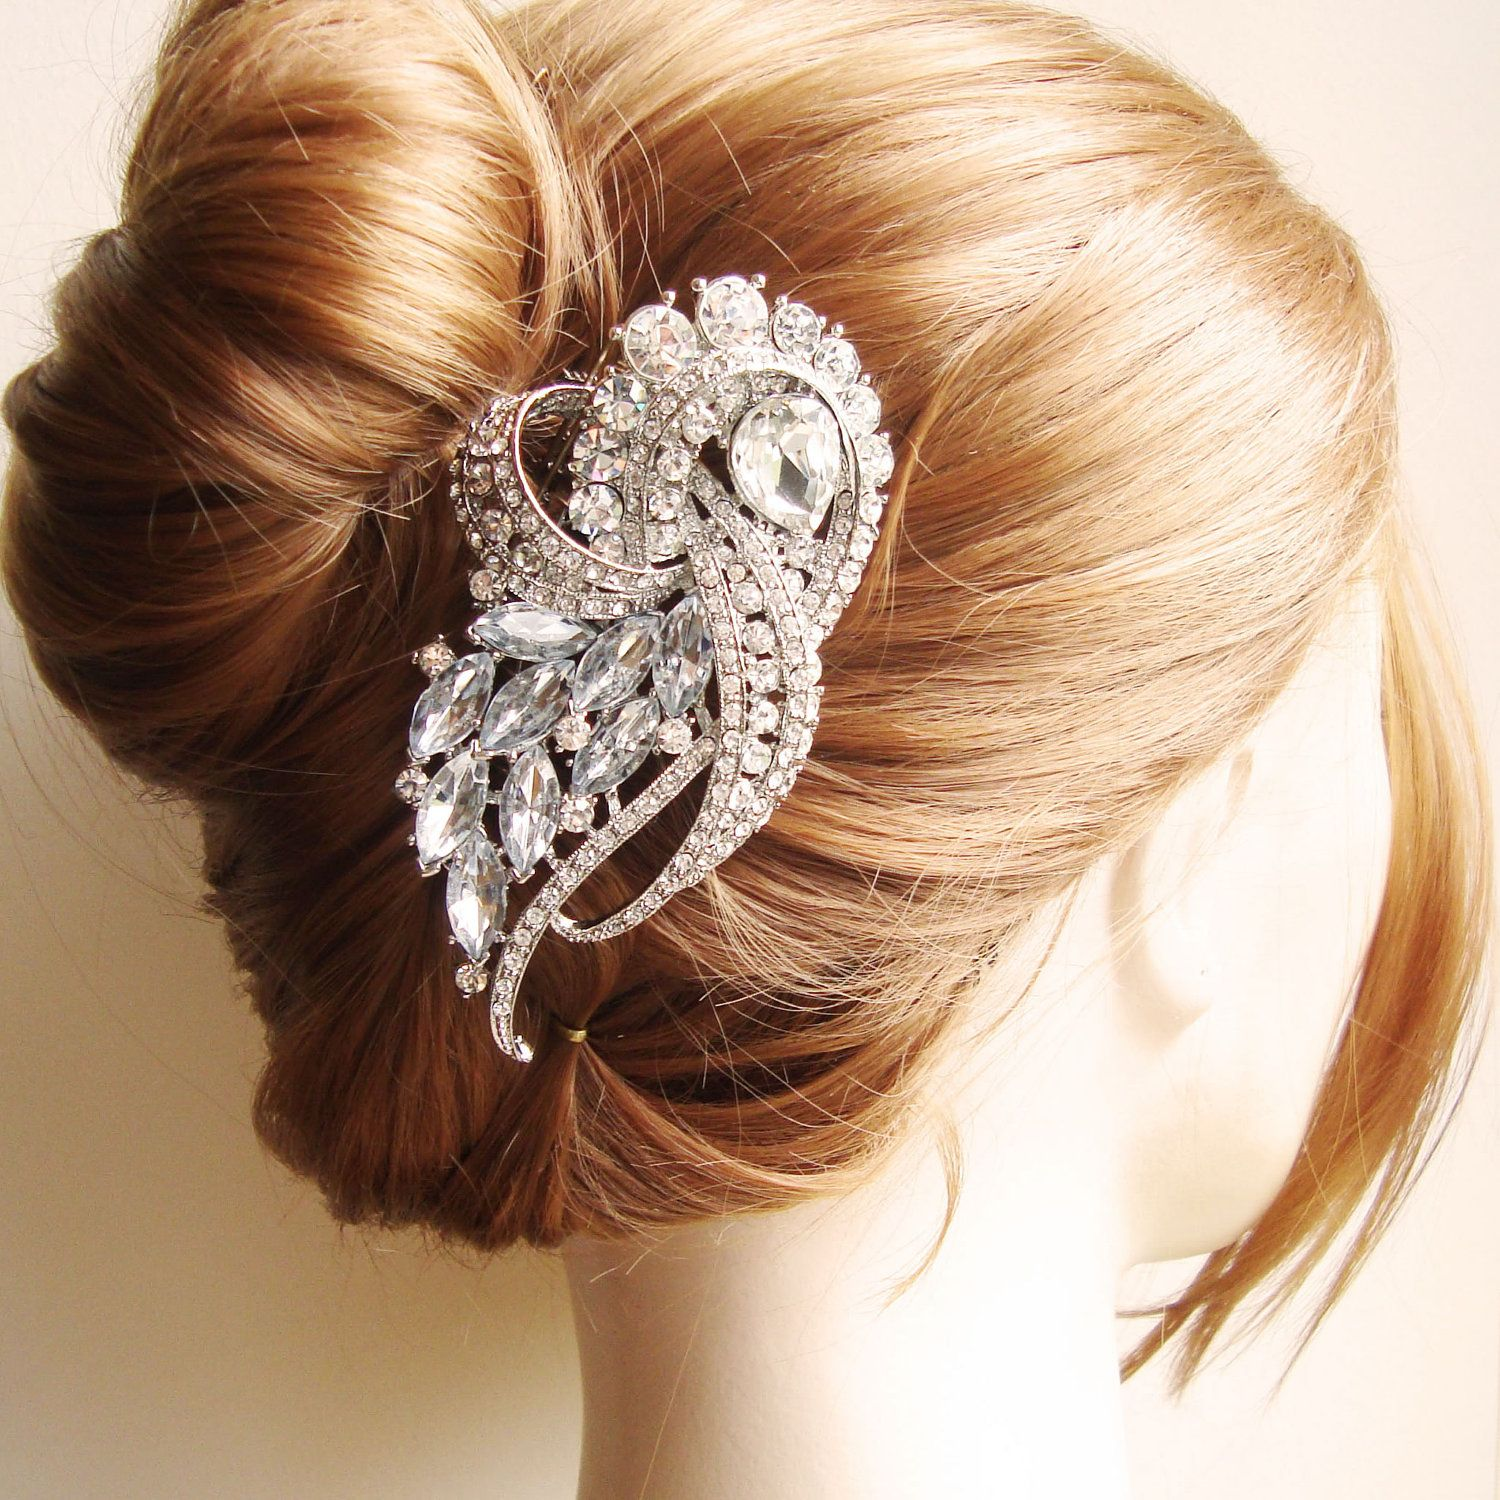 vintage style wedding bridal hair comb, rhinestone bridal